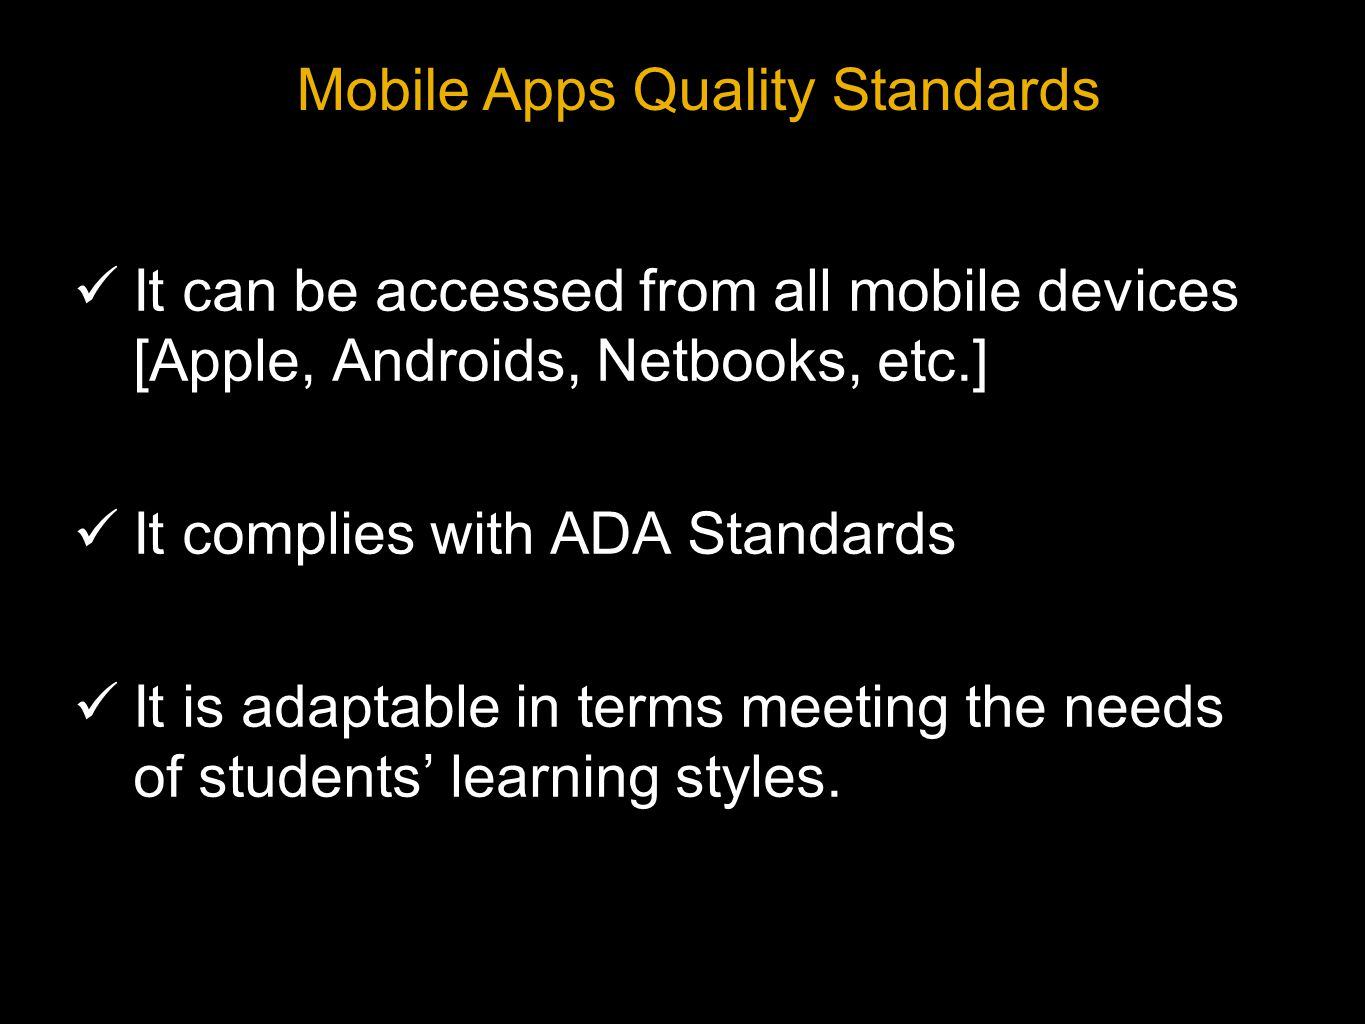 It can be accessed from all mobile devices [Apple, Androids, Netbooks, etc.] It complies with ADA Standards It is adaptable in terms meeting the needs of students learning styles.